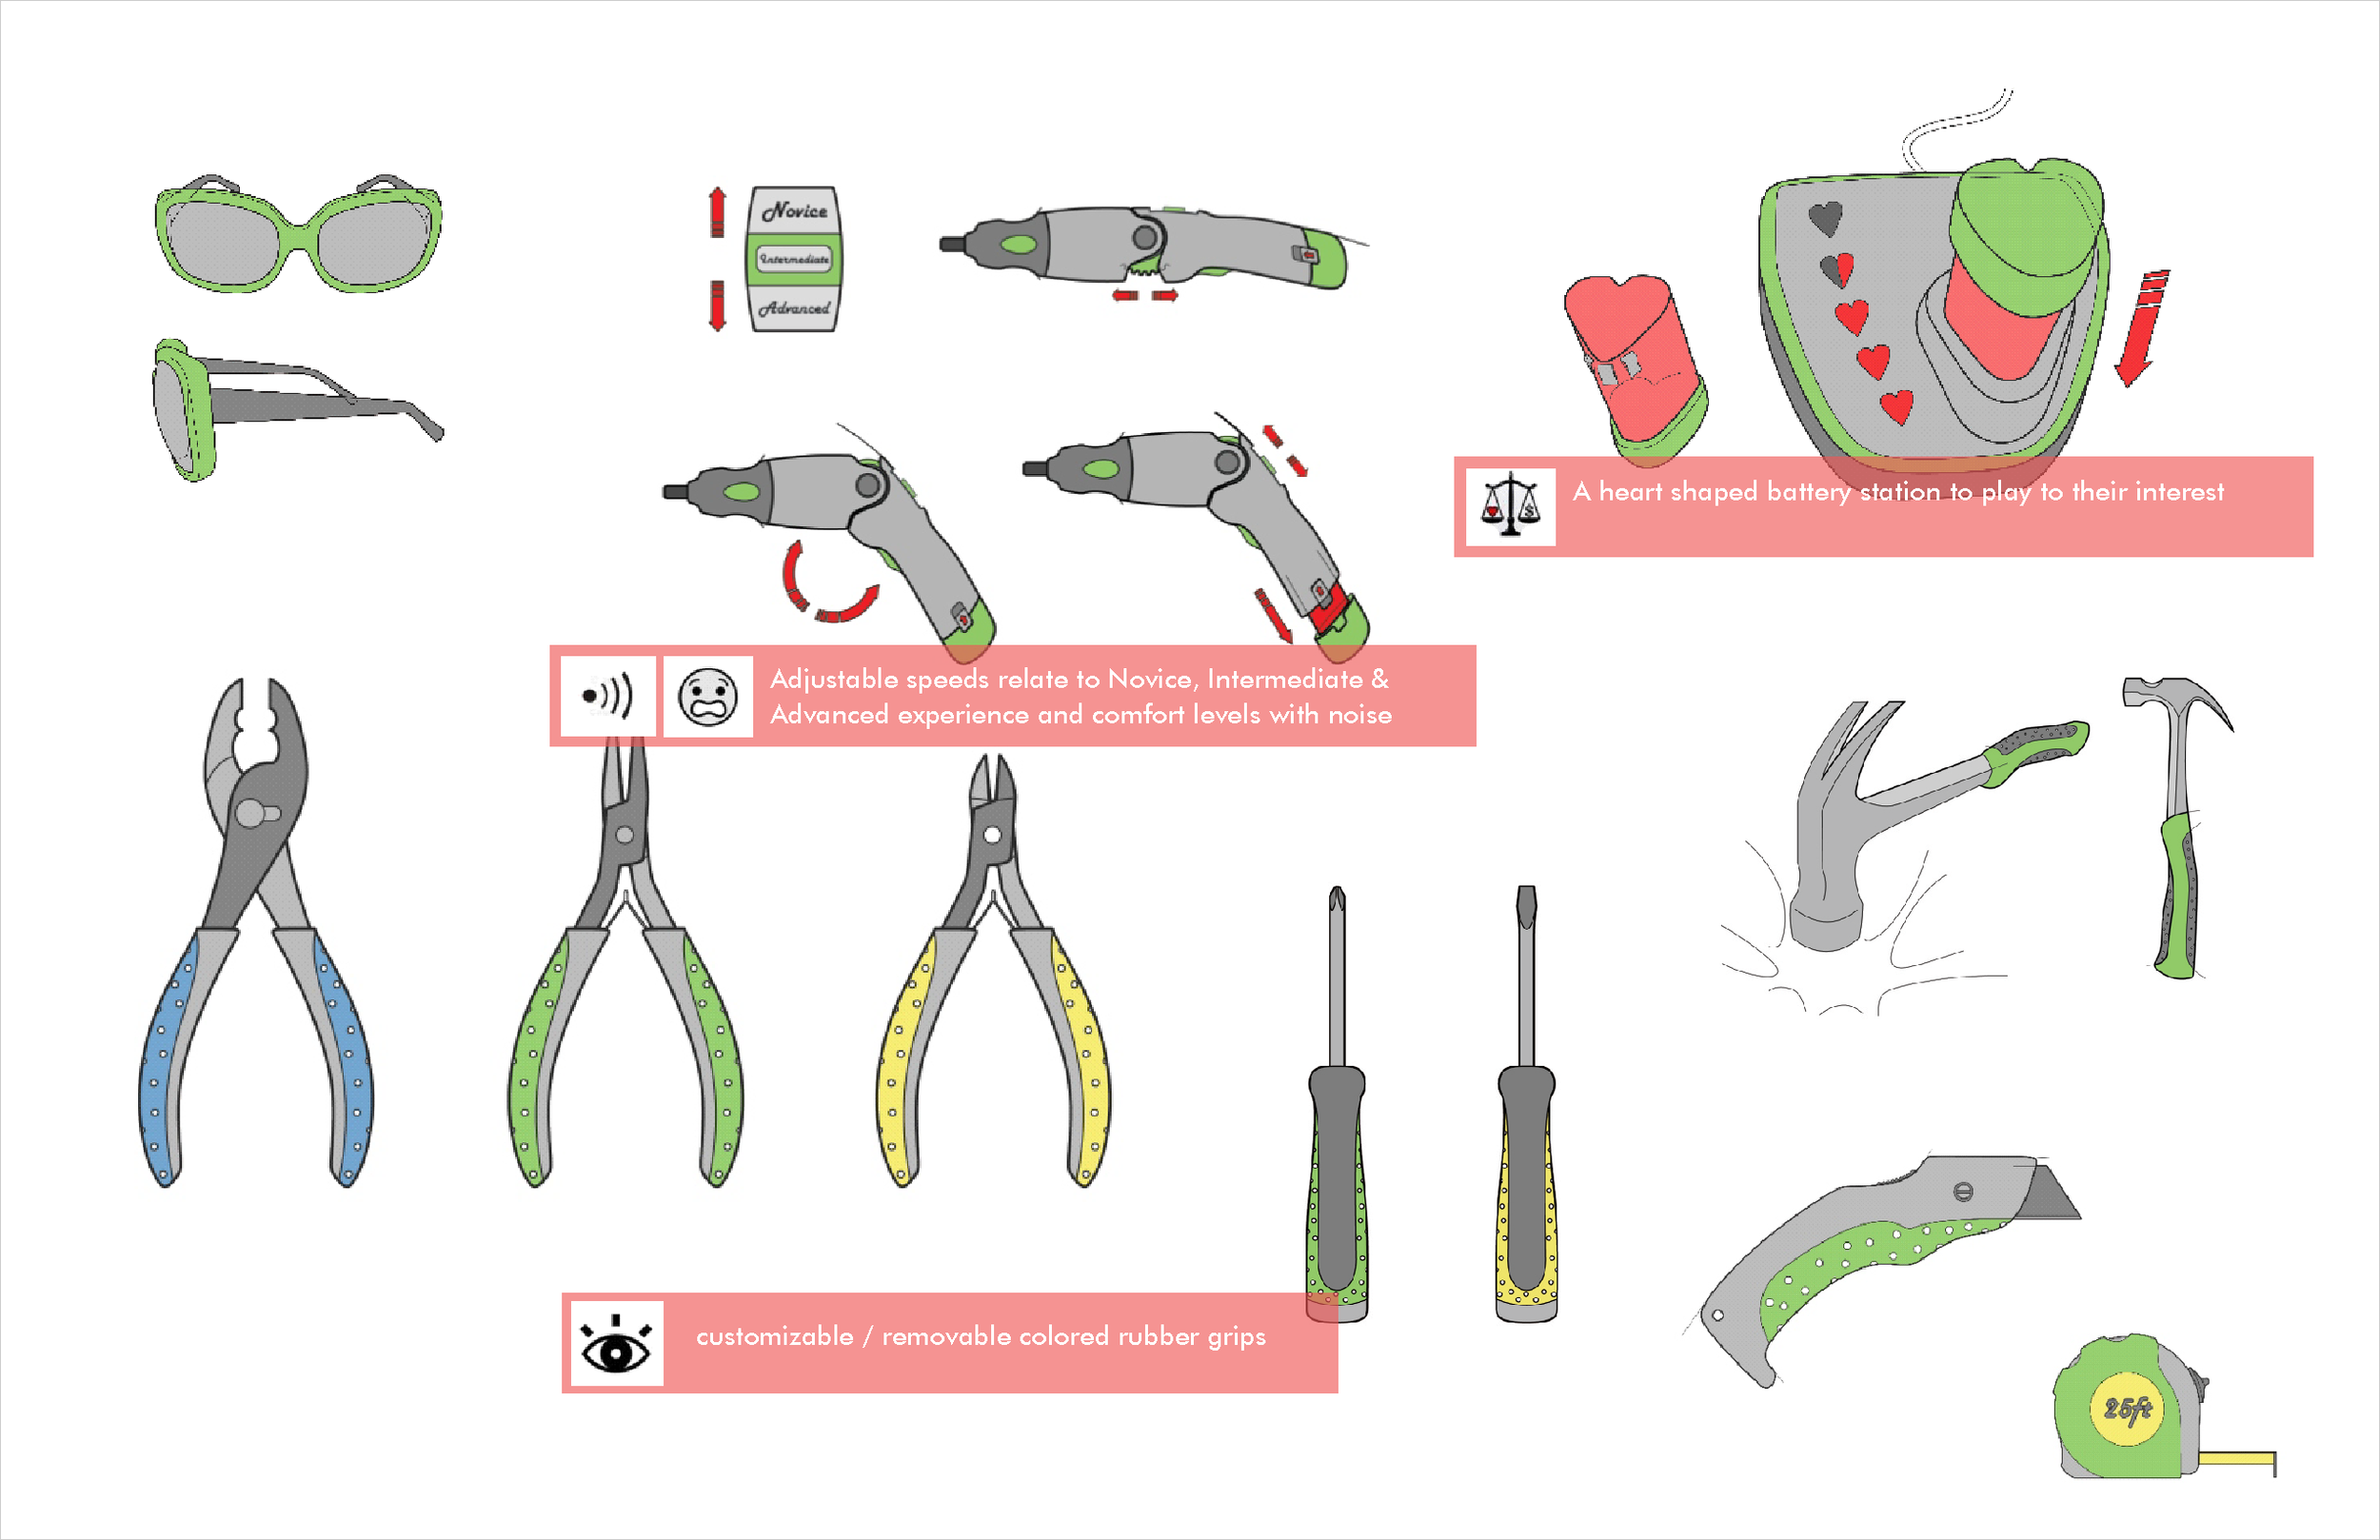 the final toolkit comprises of the basic starter toolkit + advanced level of power tools that seamlessly transition toadulttools .